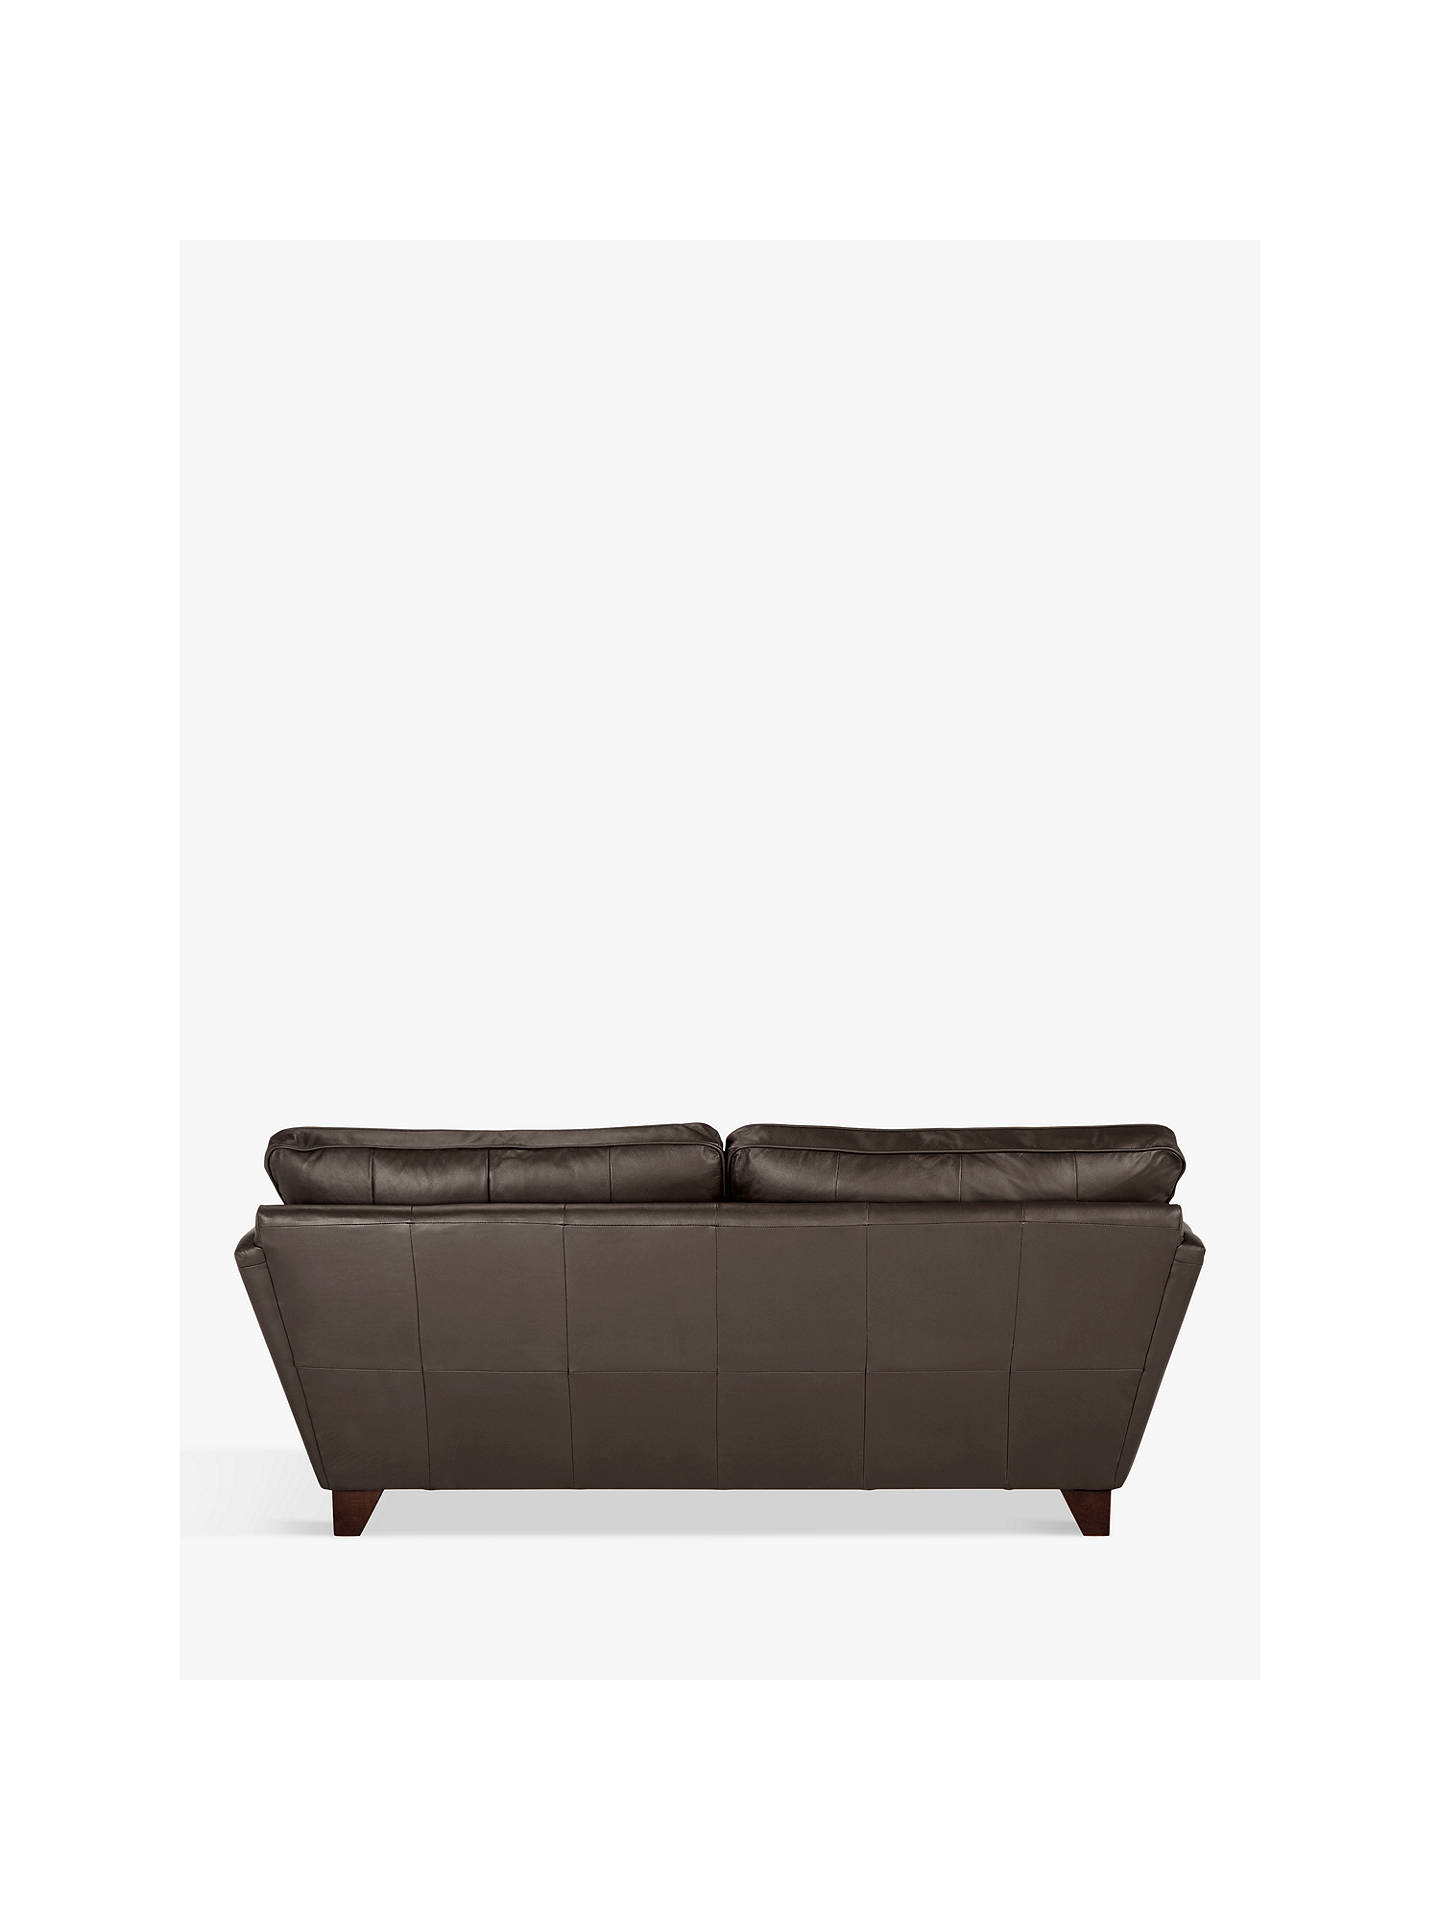 Buy John Lewis & Partners Oslo Large 3 Seater Leather Sofa, Dark Leg, Destroyed Black Online at johnlewis.com